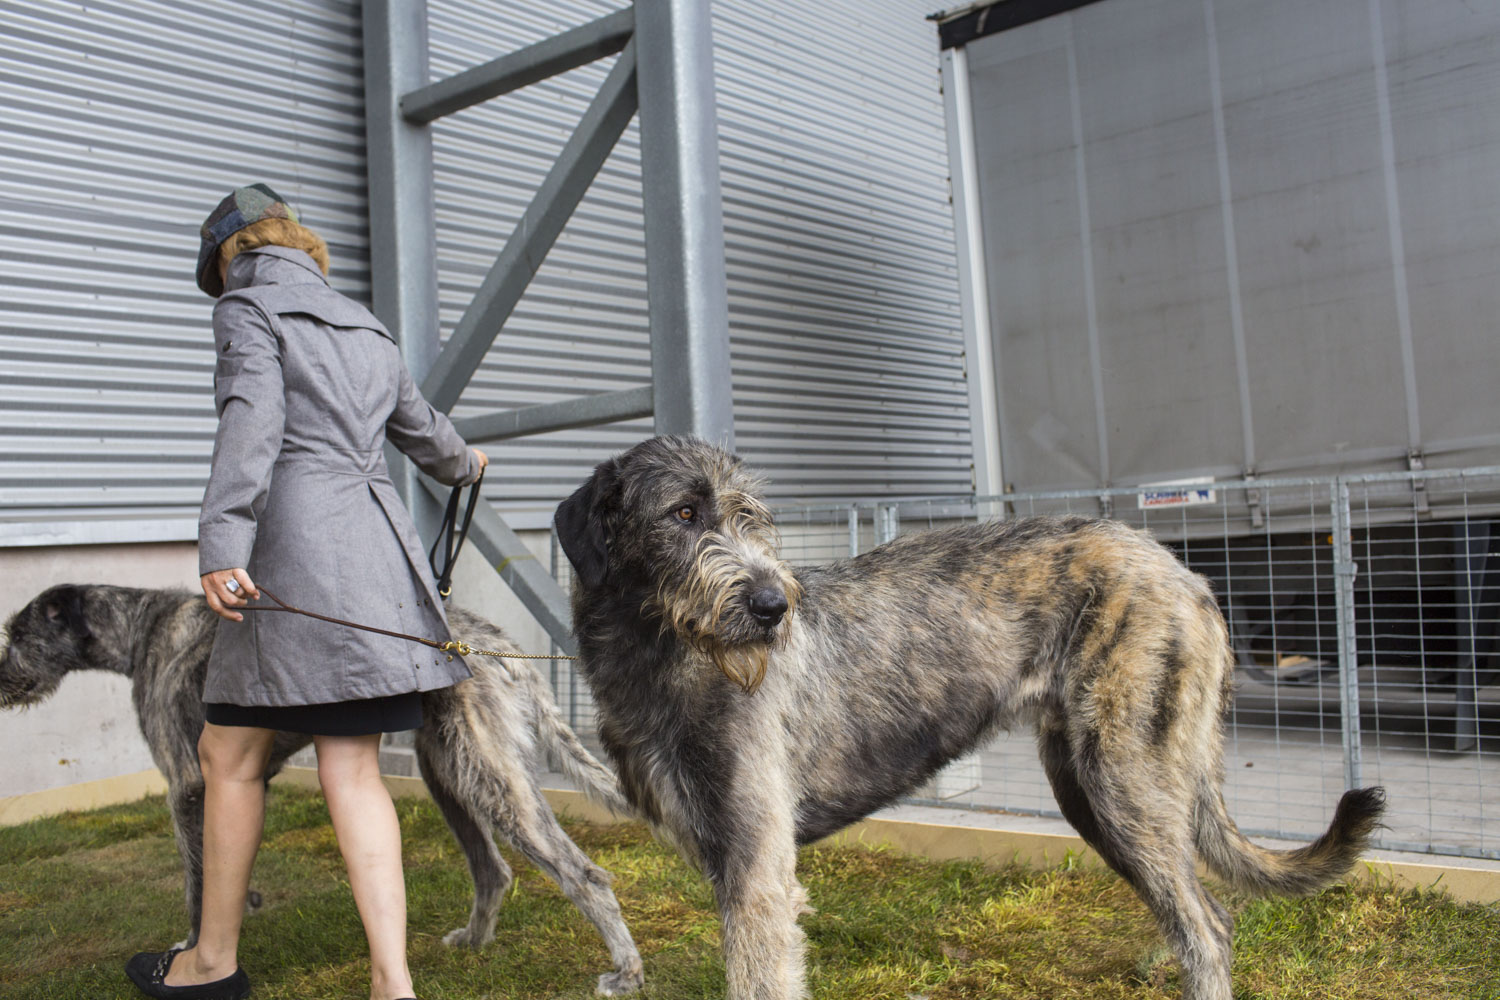 Apple, as in  apple of my eye,  an Irish Wolfhound, looks over his shoulder as his owner, Gosewien van Klaarbergen, of the Netherlands, leads her other wolfhound, Tokyo, outside of the 2014 World Dog Show on Saturday, August 9th, 2014, in Helsinki, Finland.